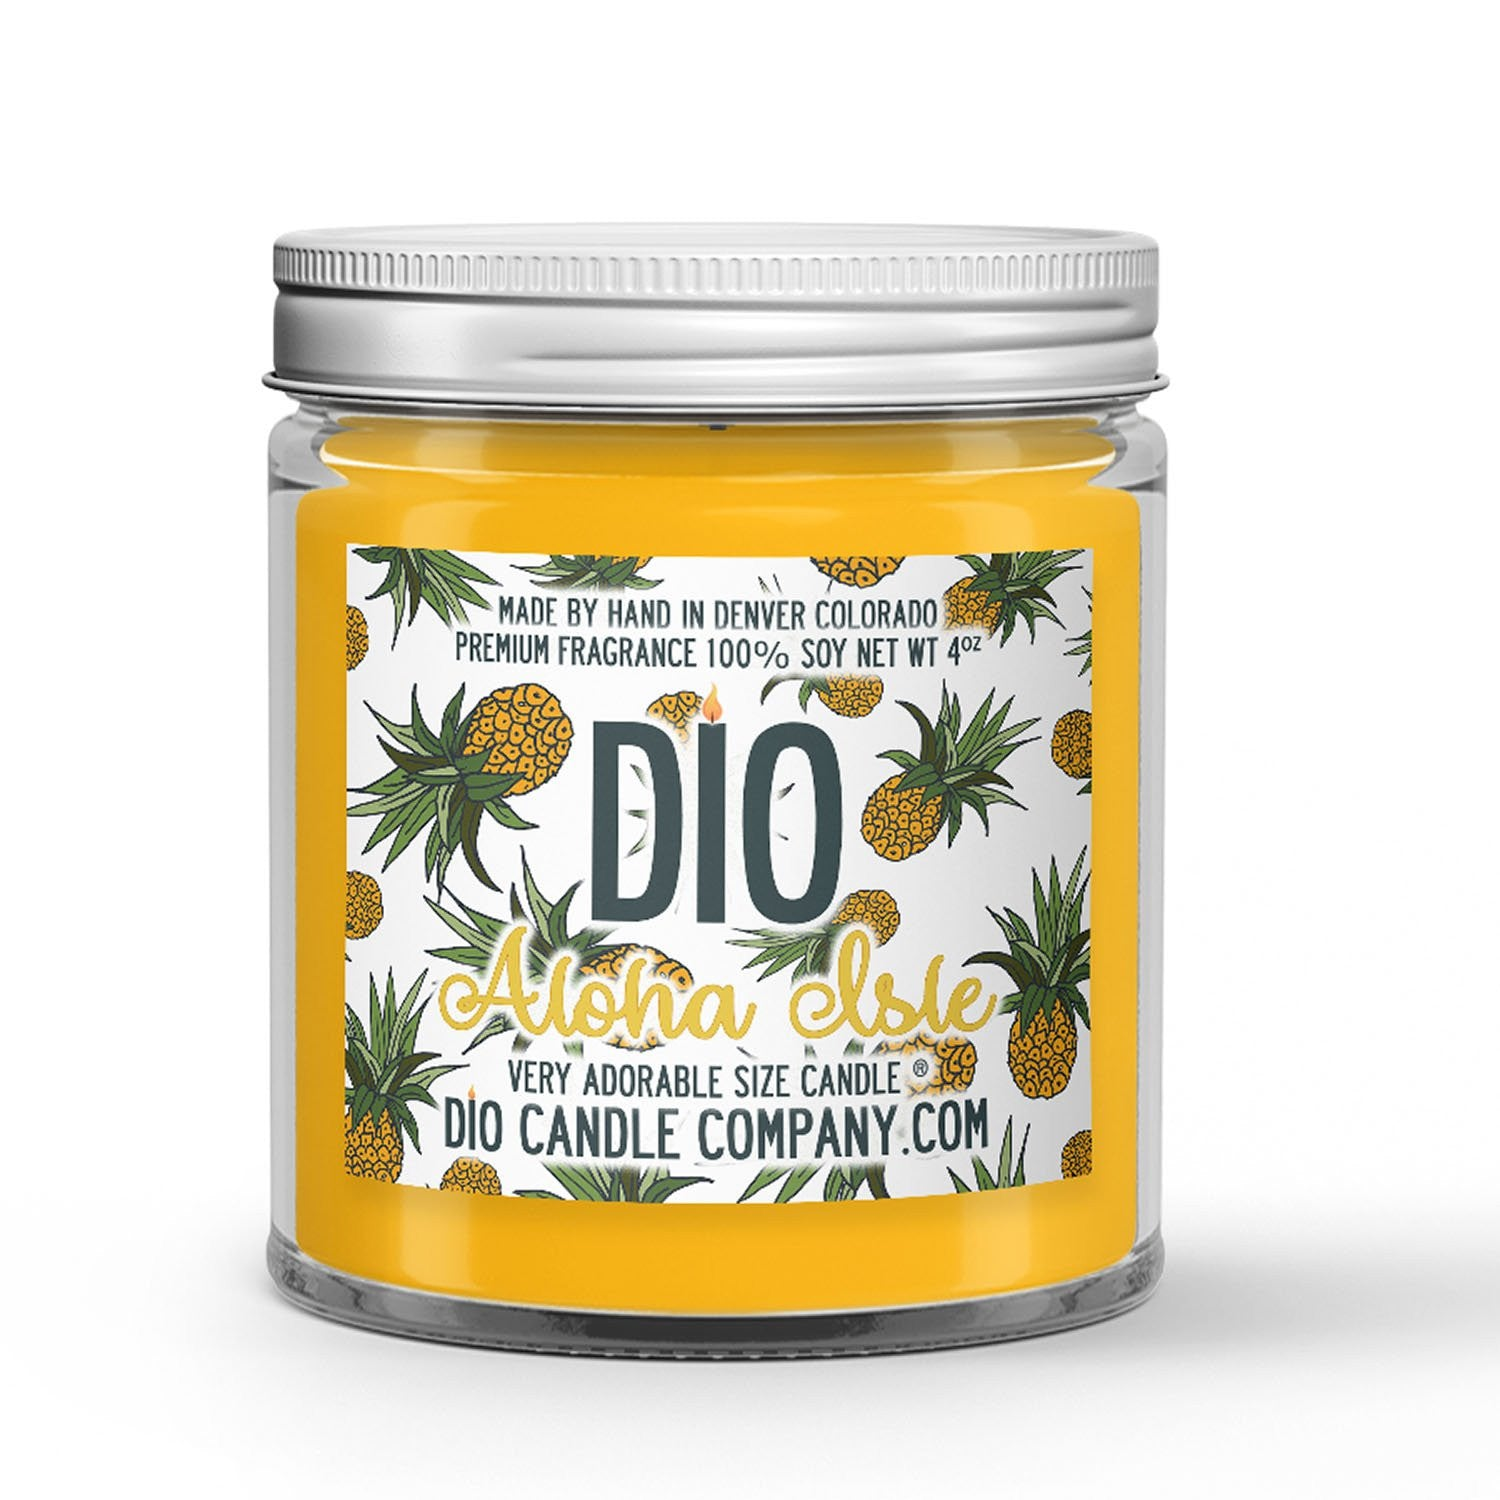 Aloha Isle Candle Pineapple Ice Cream Scented - Dio Candle Company